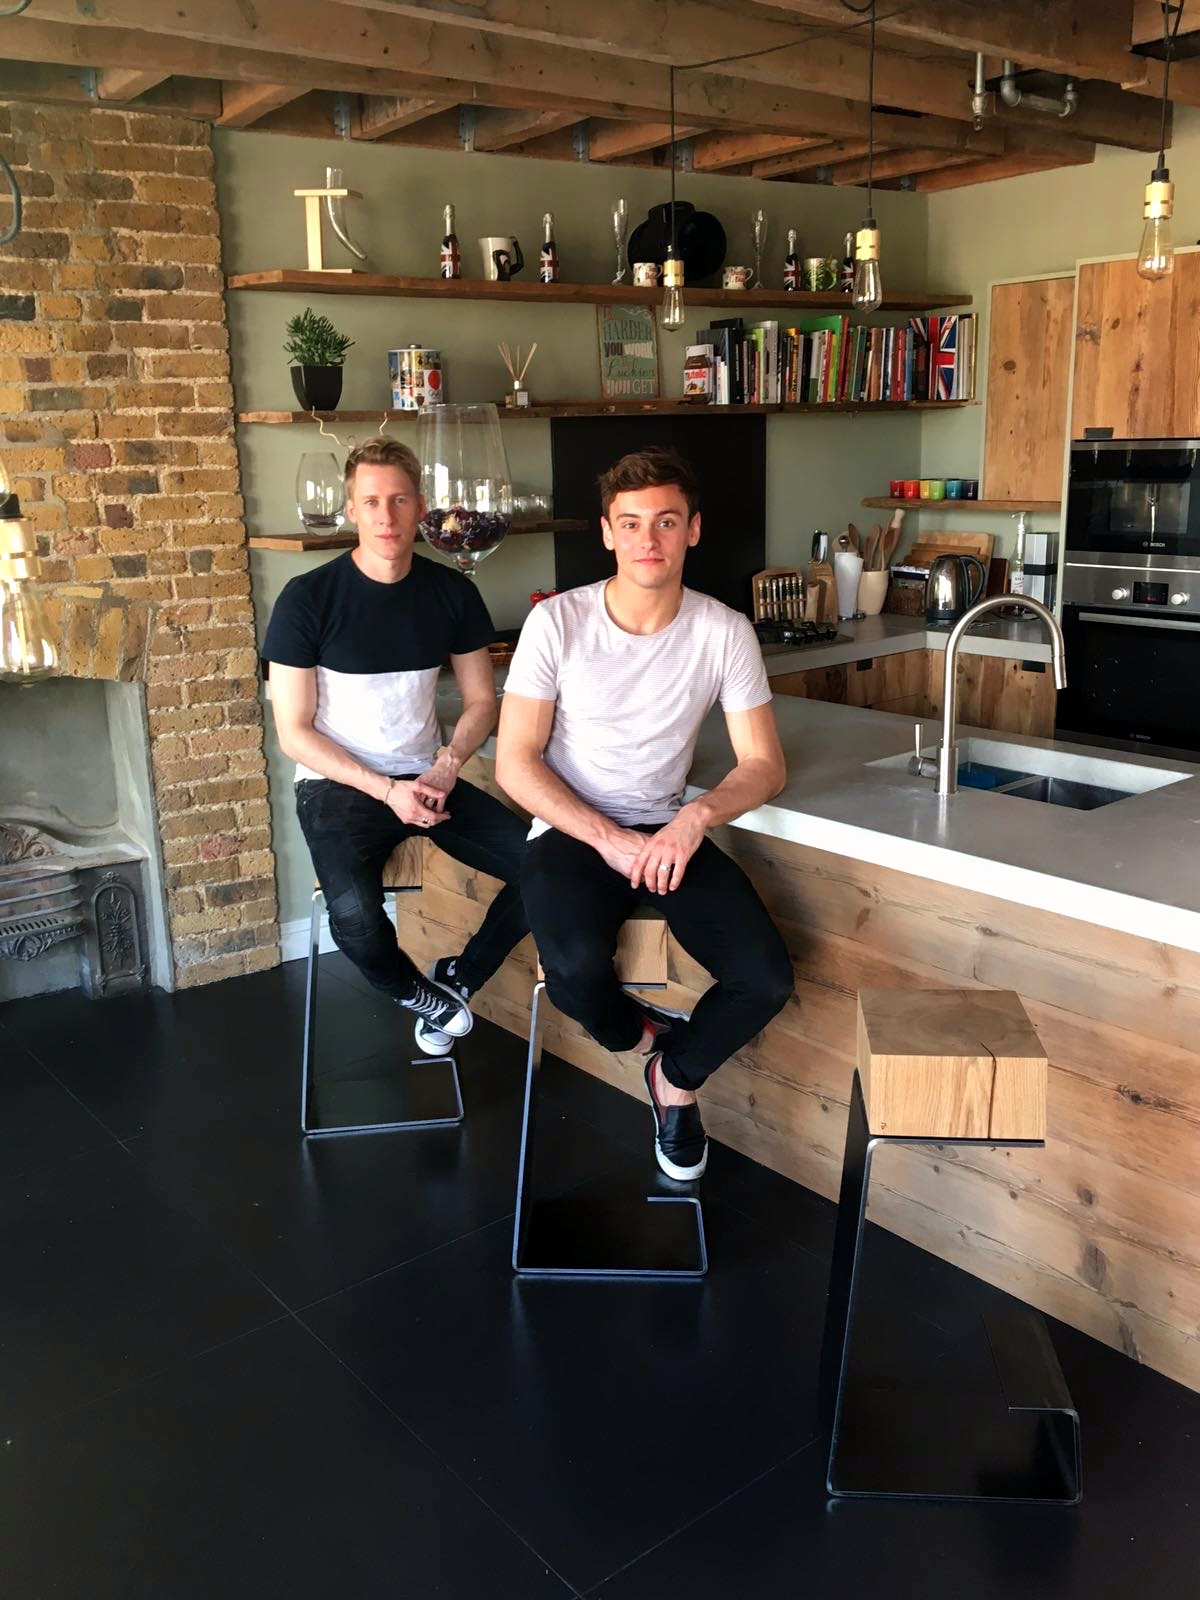 Loft Style Interior Inspiration by Tom Daley and Daniel Lance Black